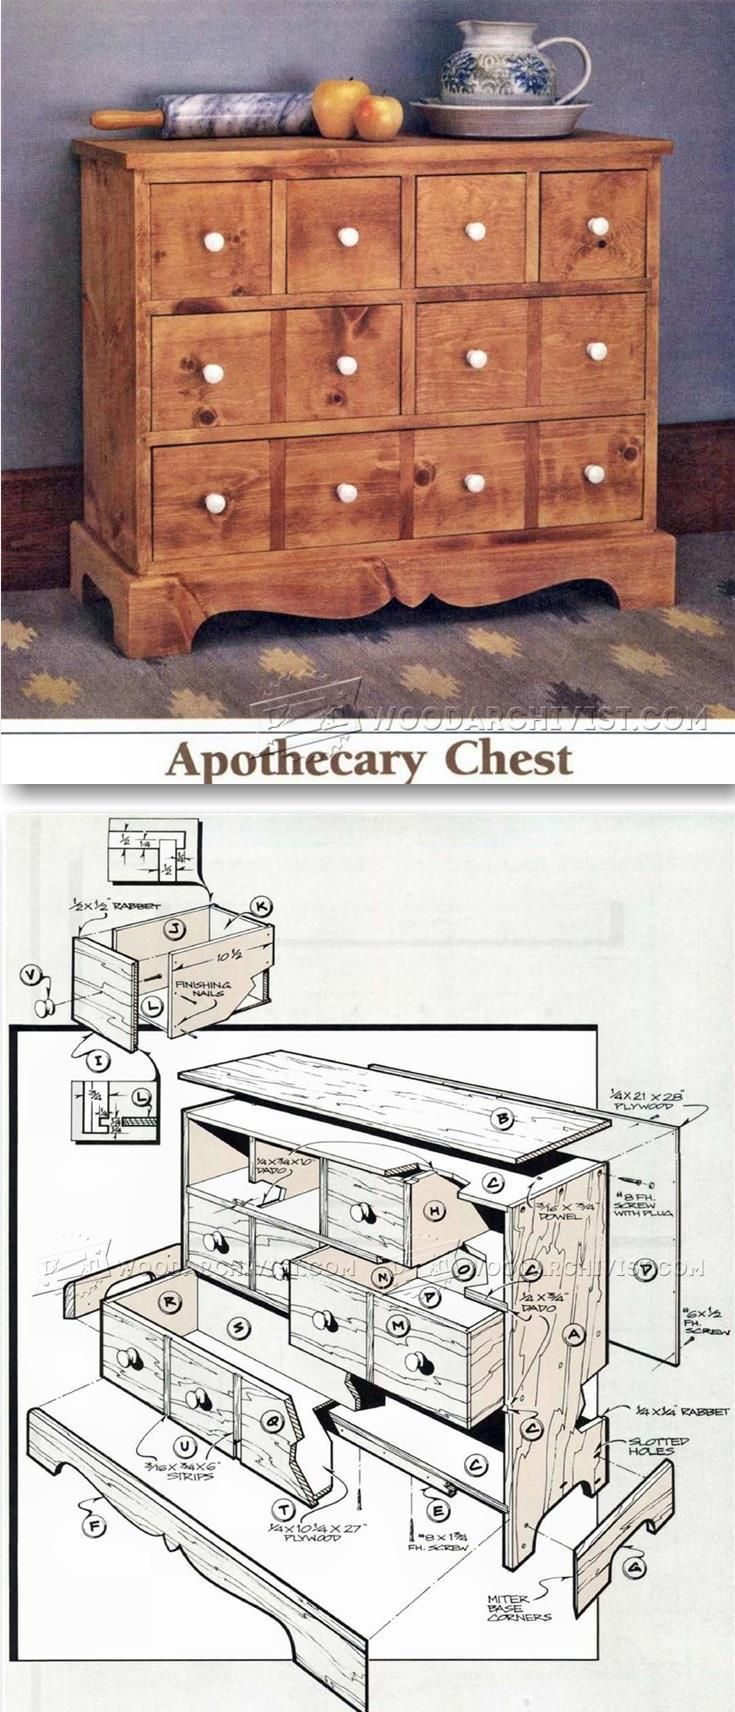 Apothecary Chest Plans - Furniture Plans and Projects   WoodArchivist.com